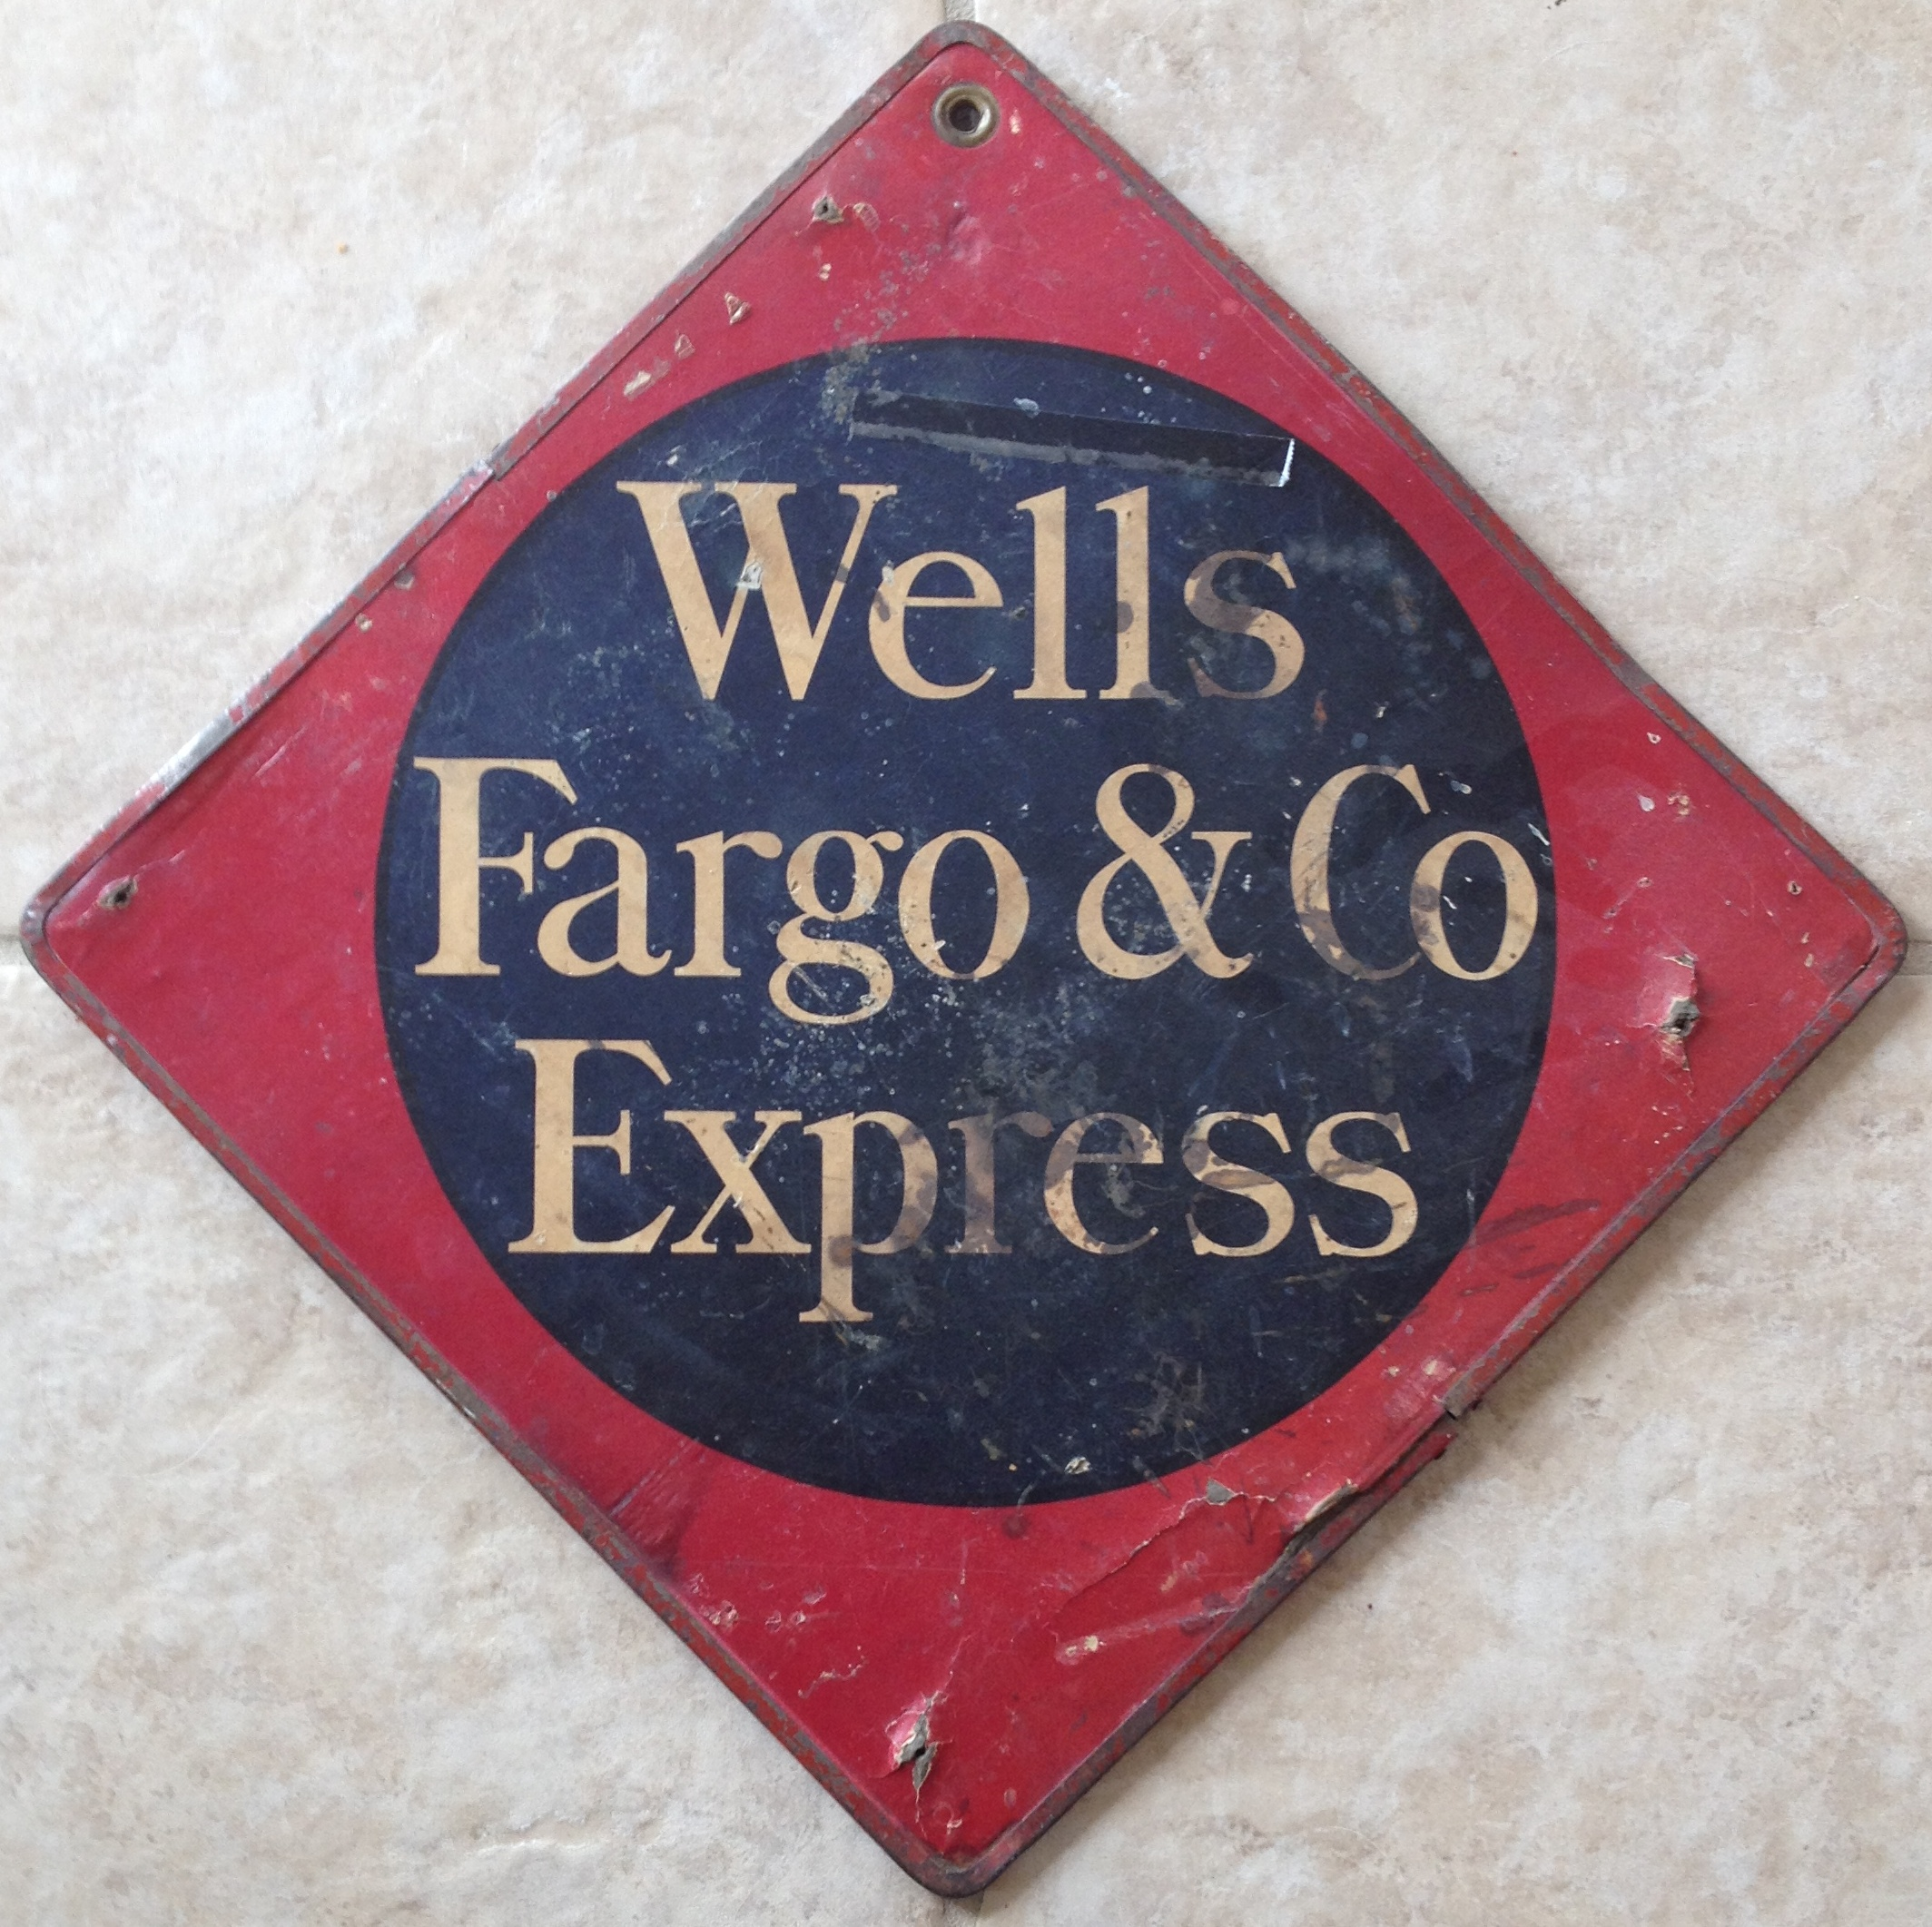 Wells Fargo & Co Express 1912 Call Card